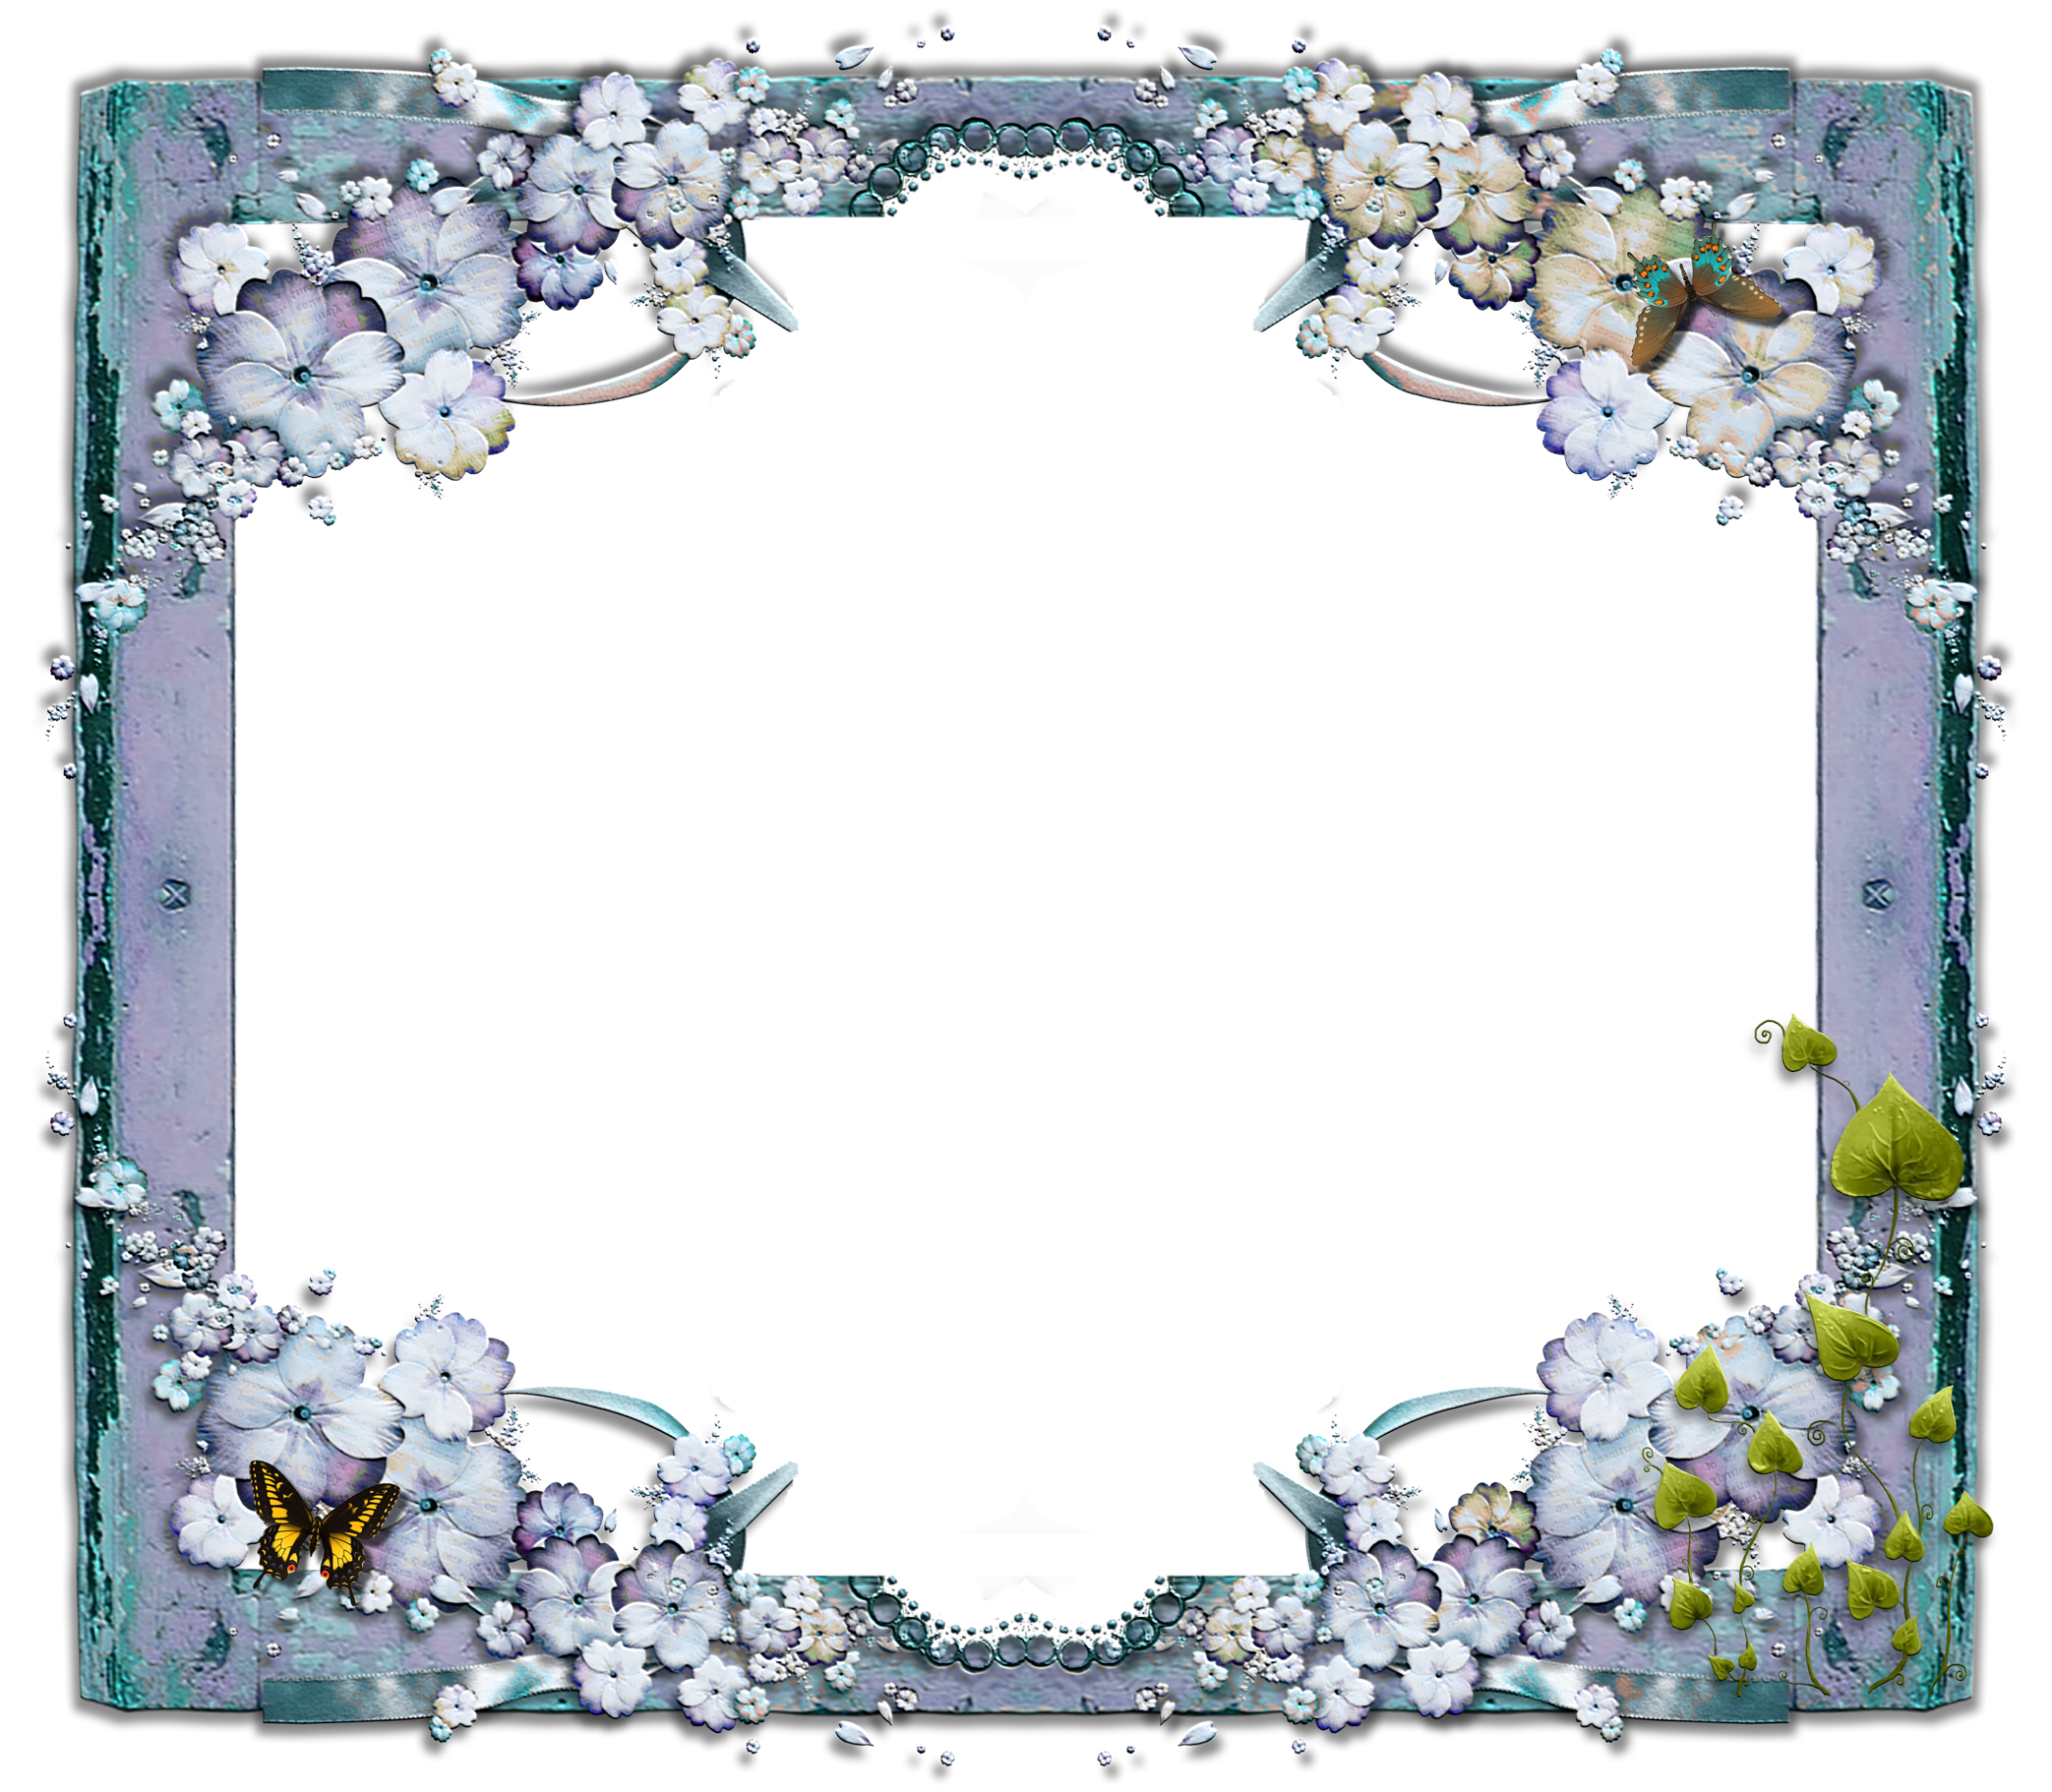 Home gt;gt; Objects gt;gt; Frame Png gt; Photo Frame PNG images free dow